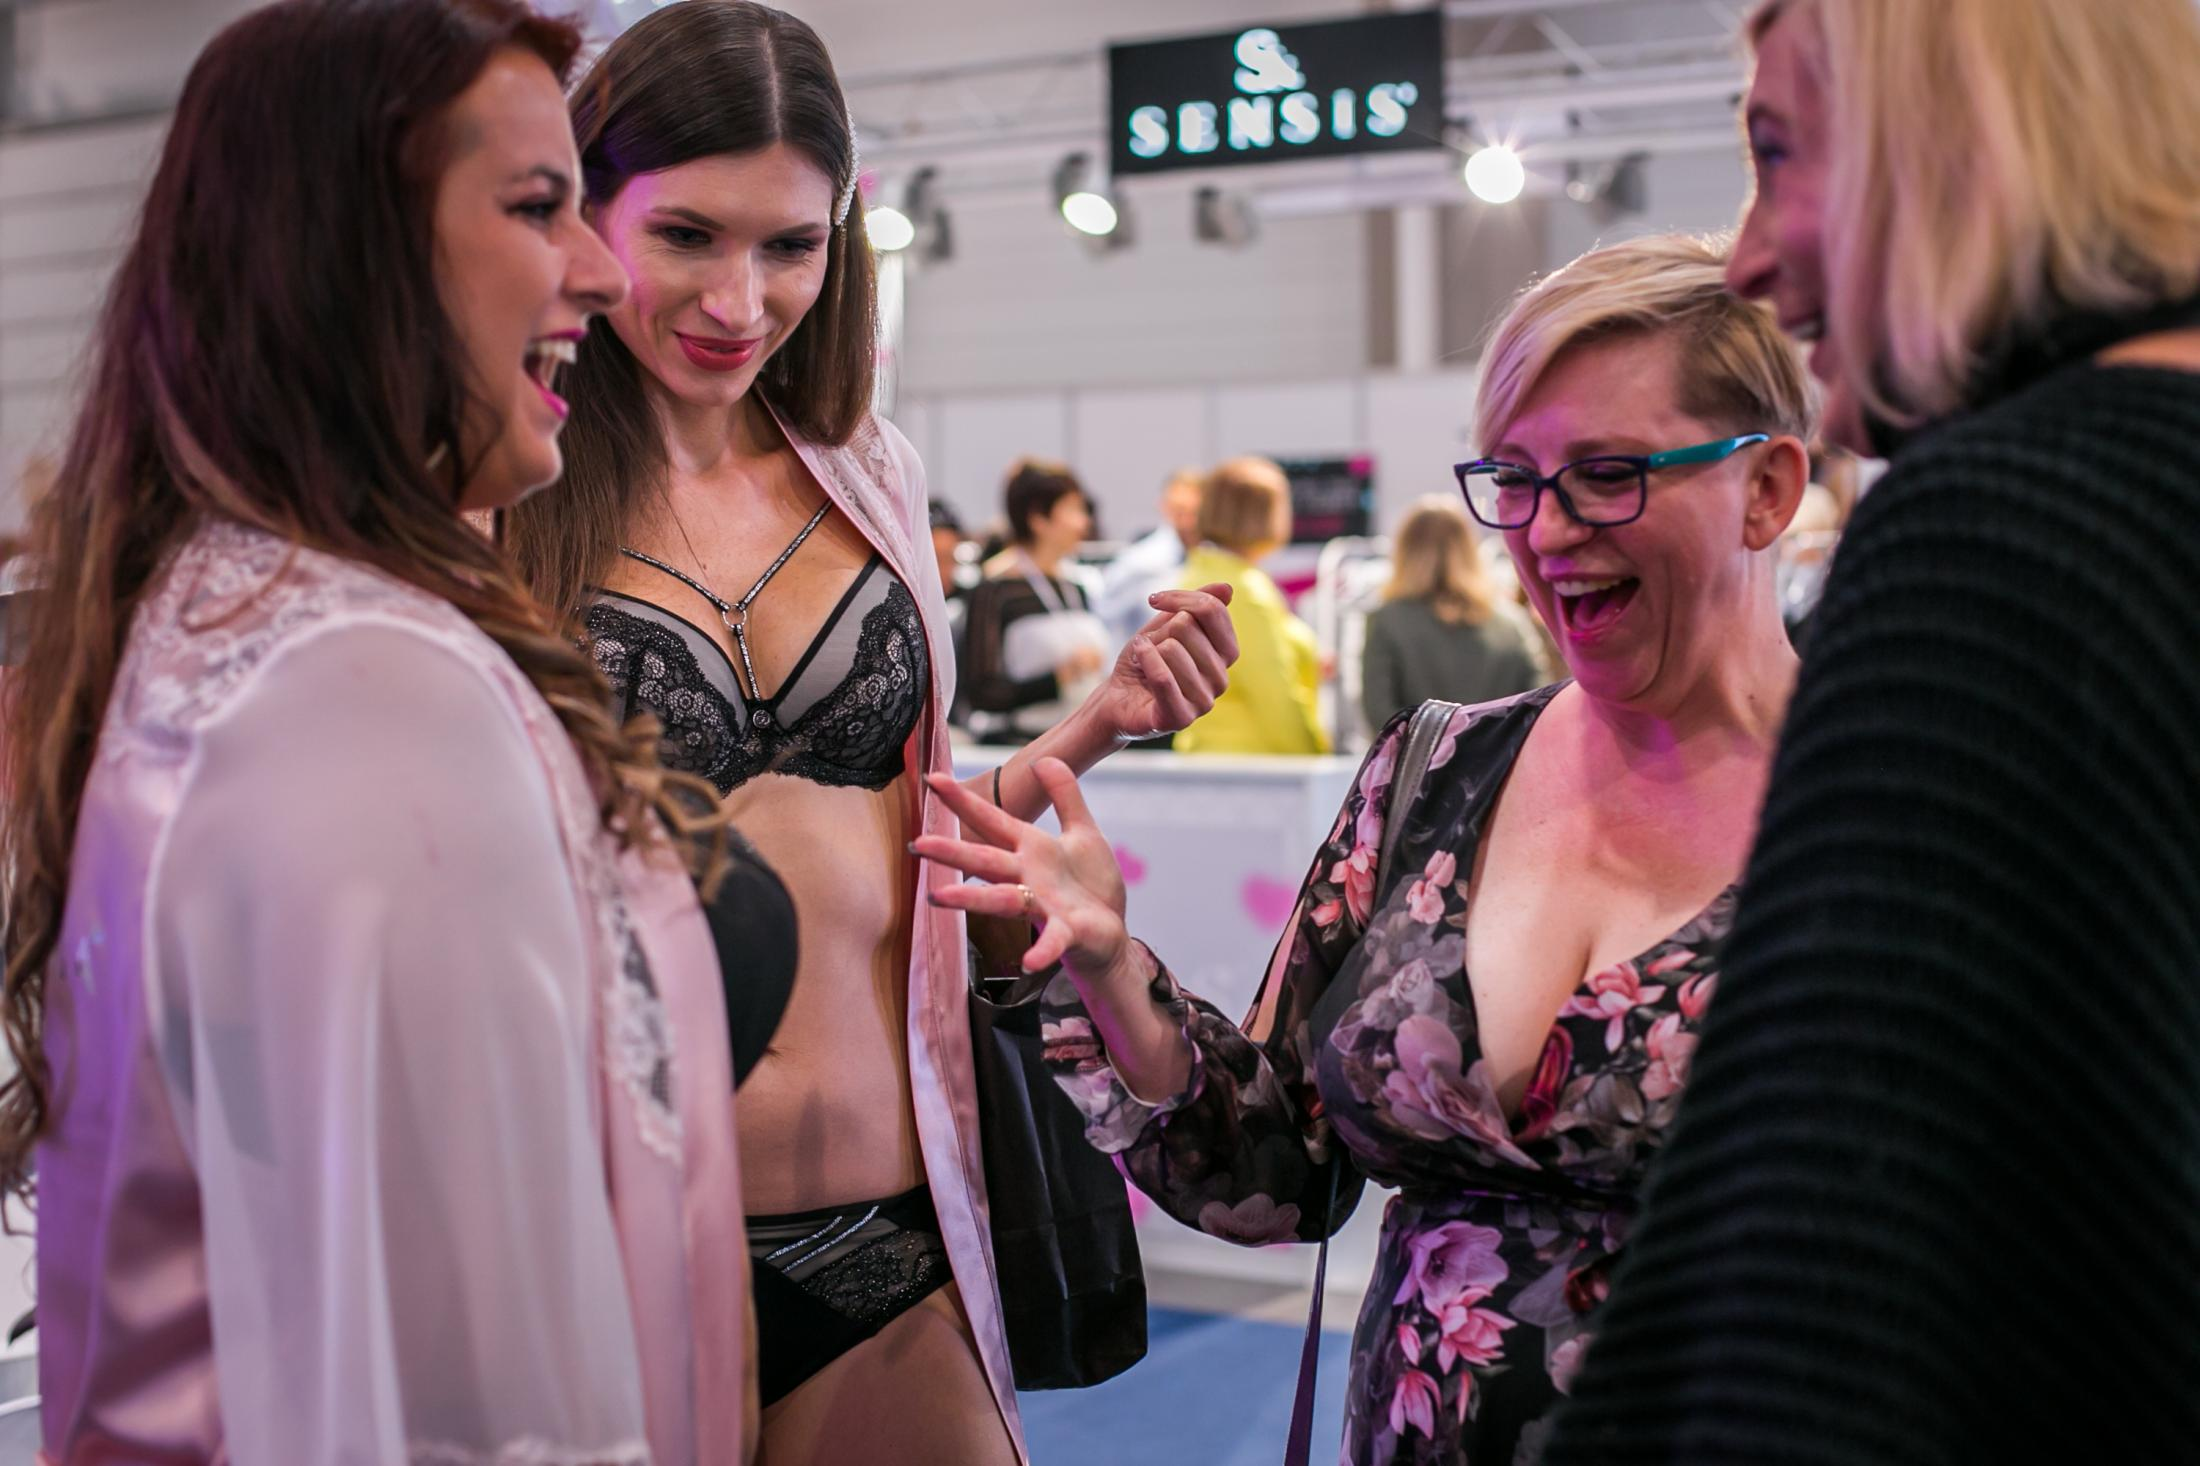 Models show looks at a lingerie show in Lodz, Poland.